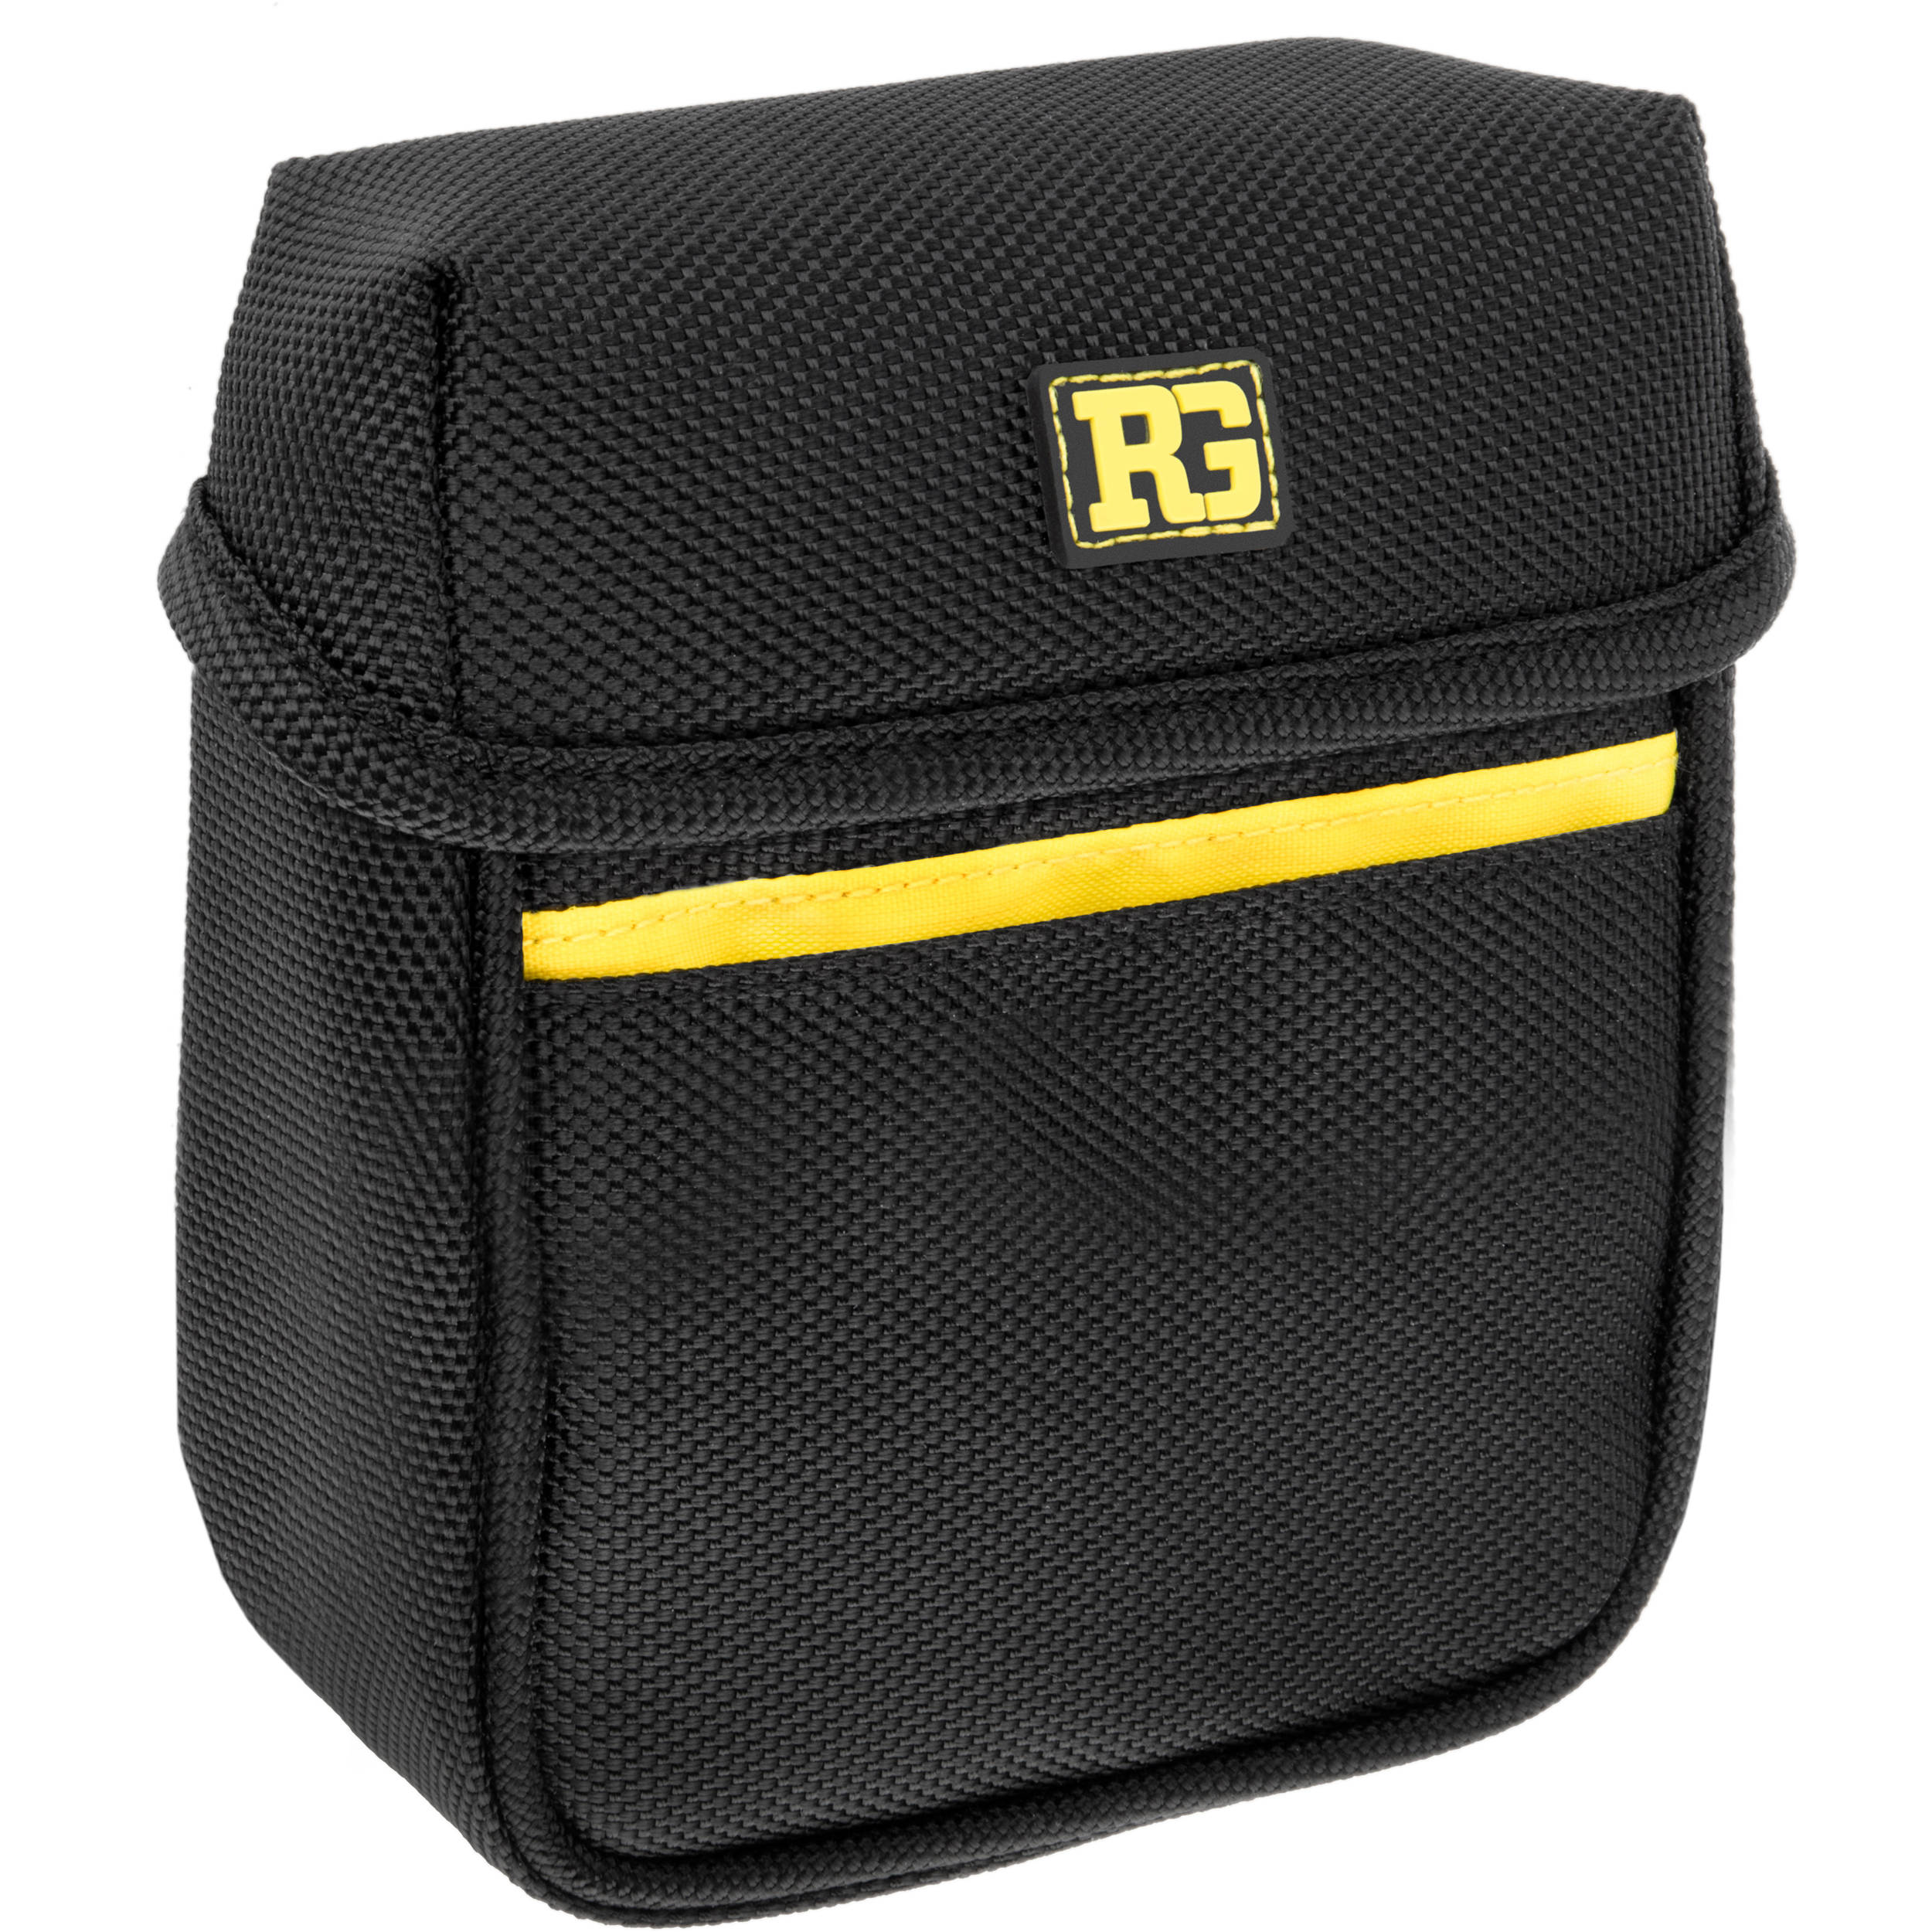 Up to 82mm 2 Pack Ruggard Four Pocket Filter Pouch